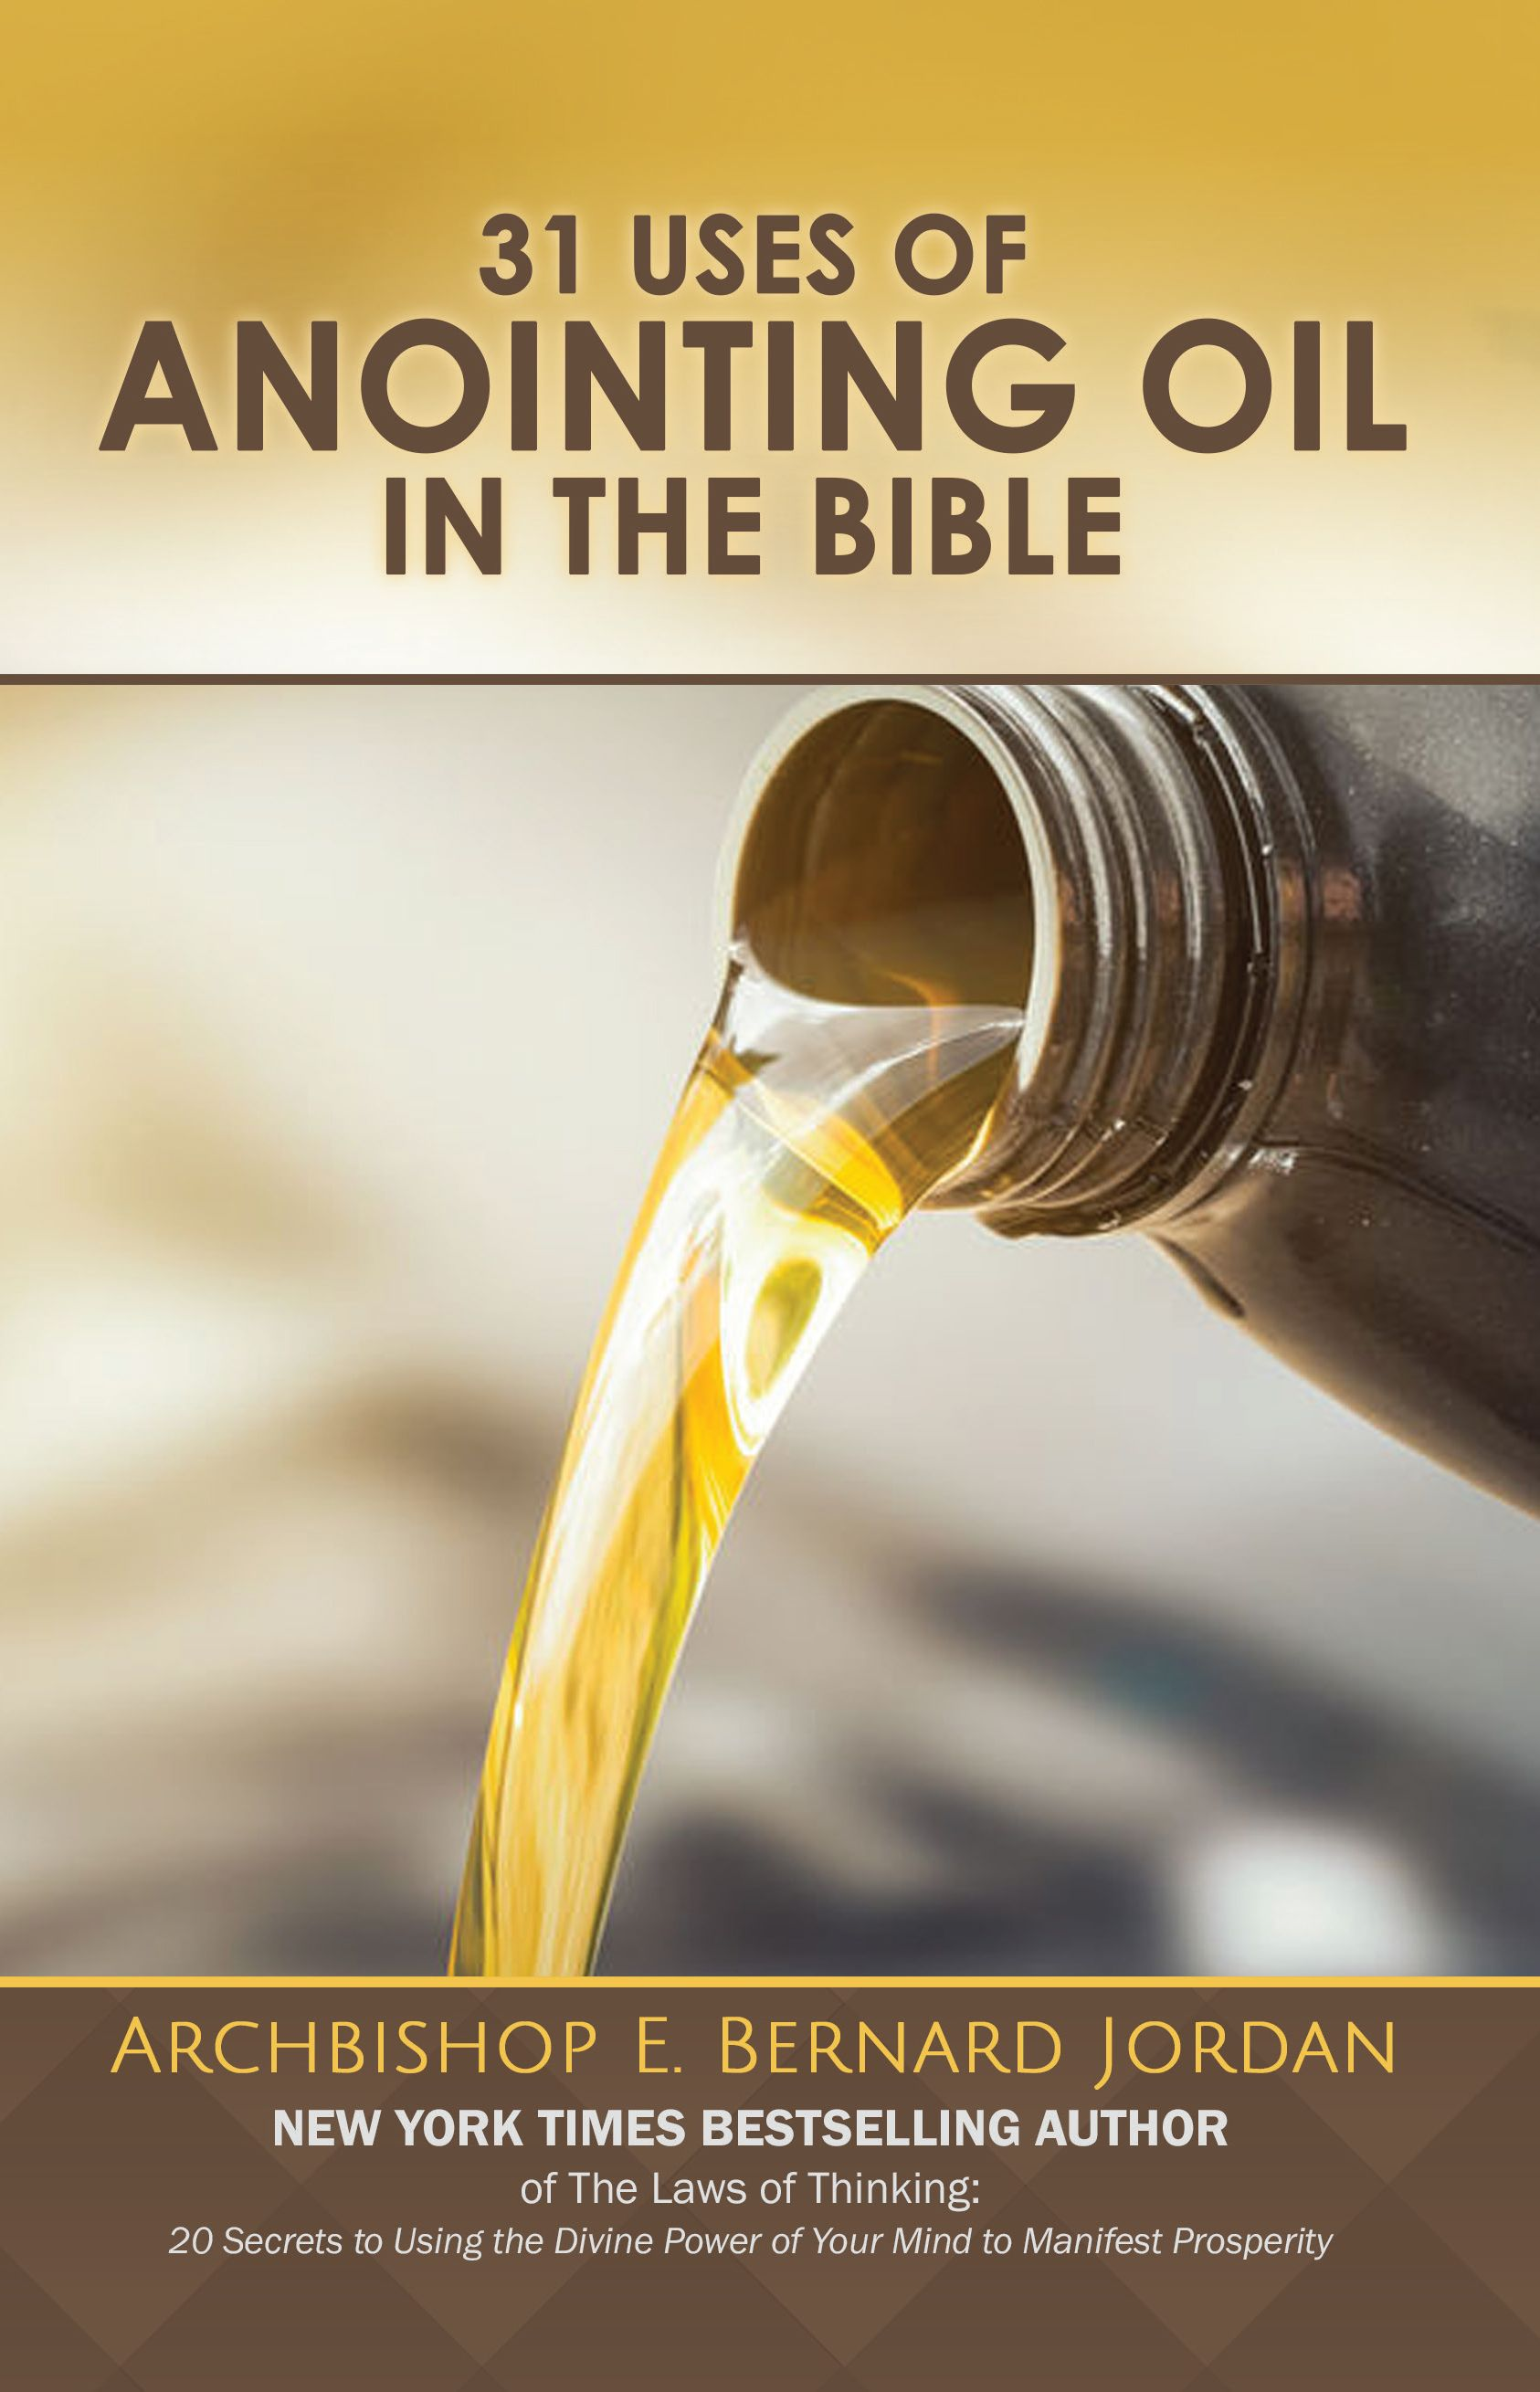 31 Uses of the Anointing in the Bible